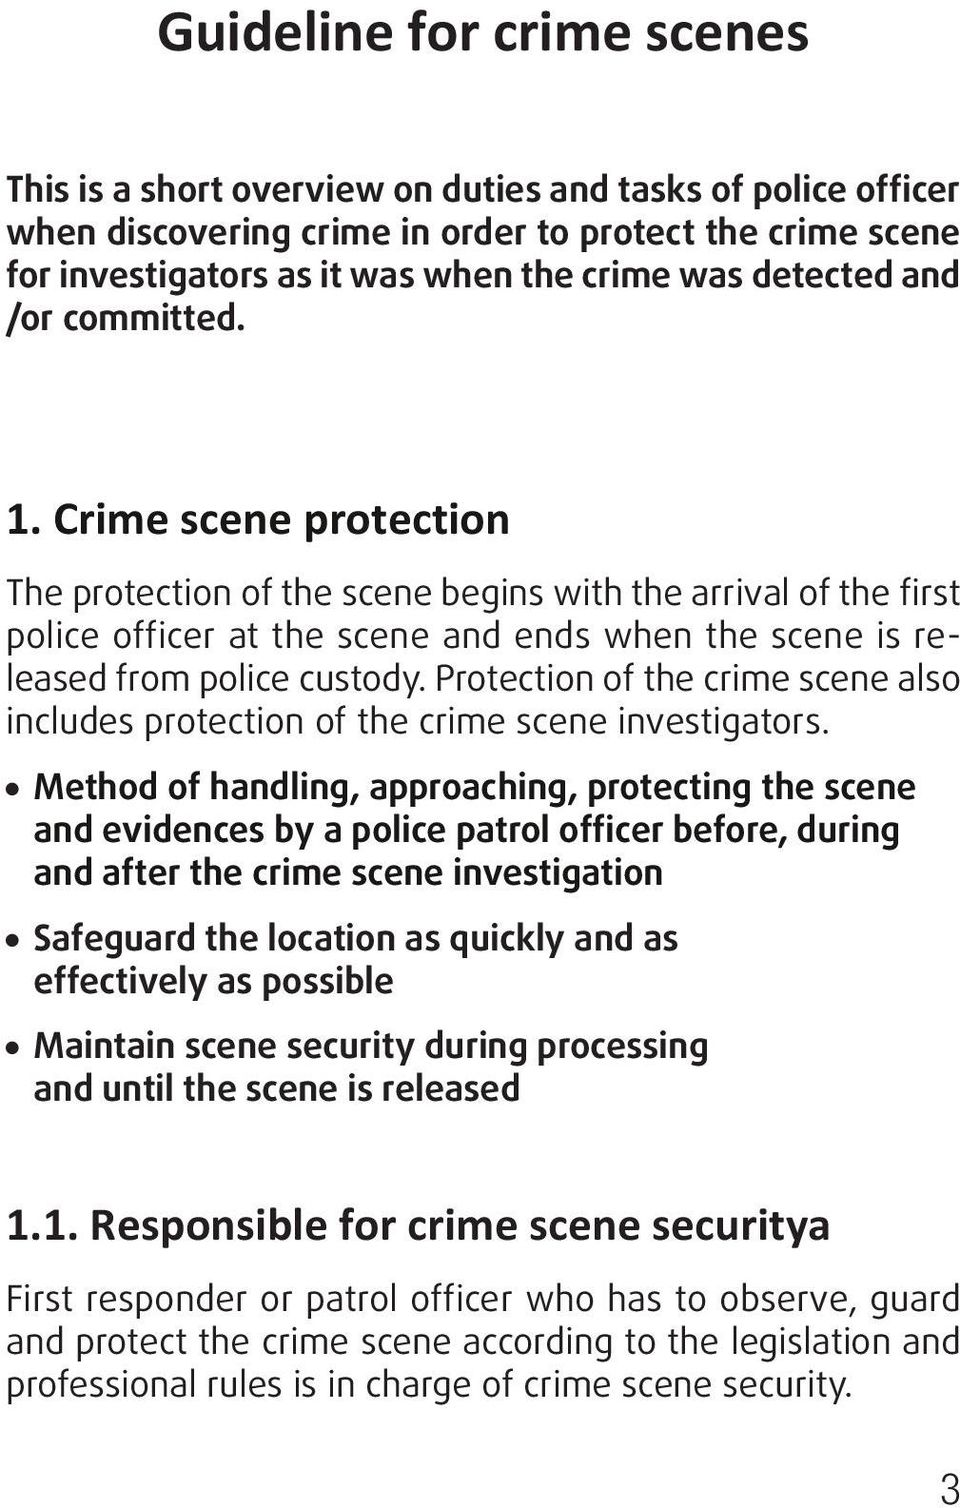 Crime scene protection The protection of the scene begins with the arrival of the first police officer at the scene and ends when the scene is released from police custody.